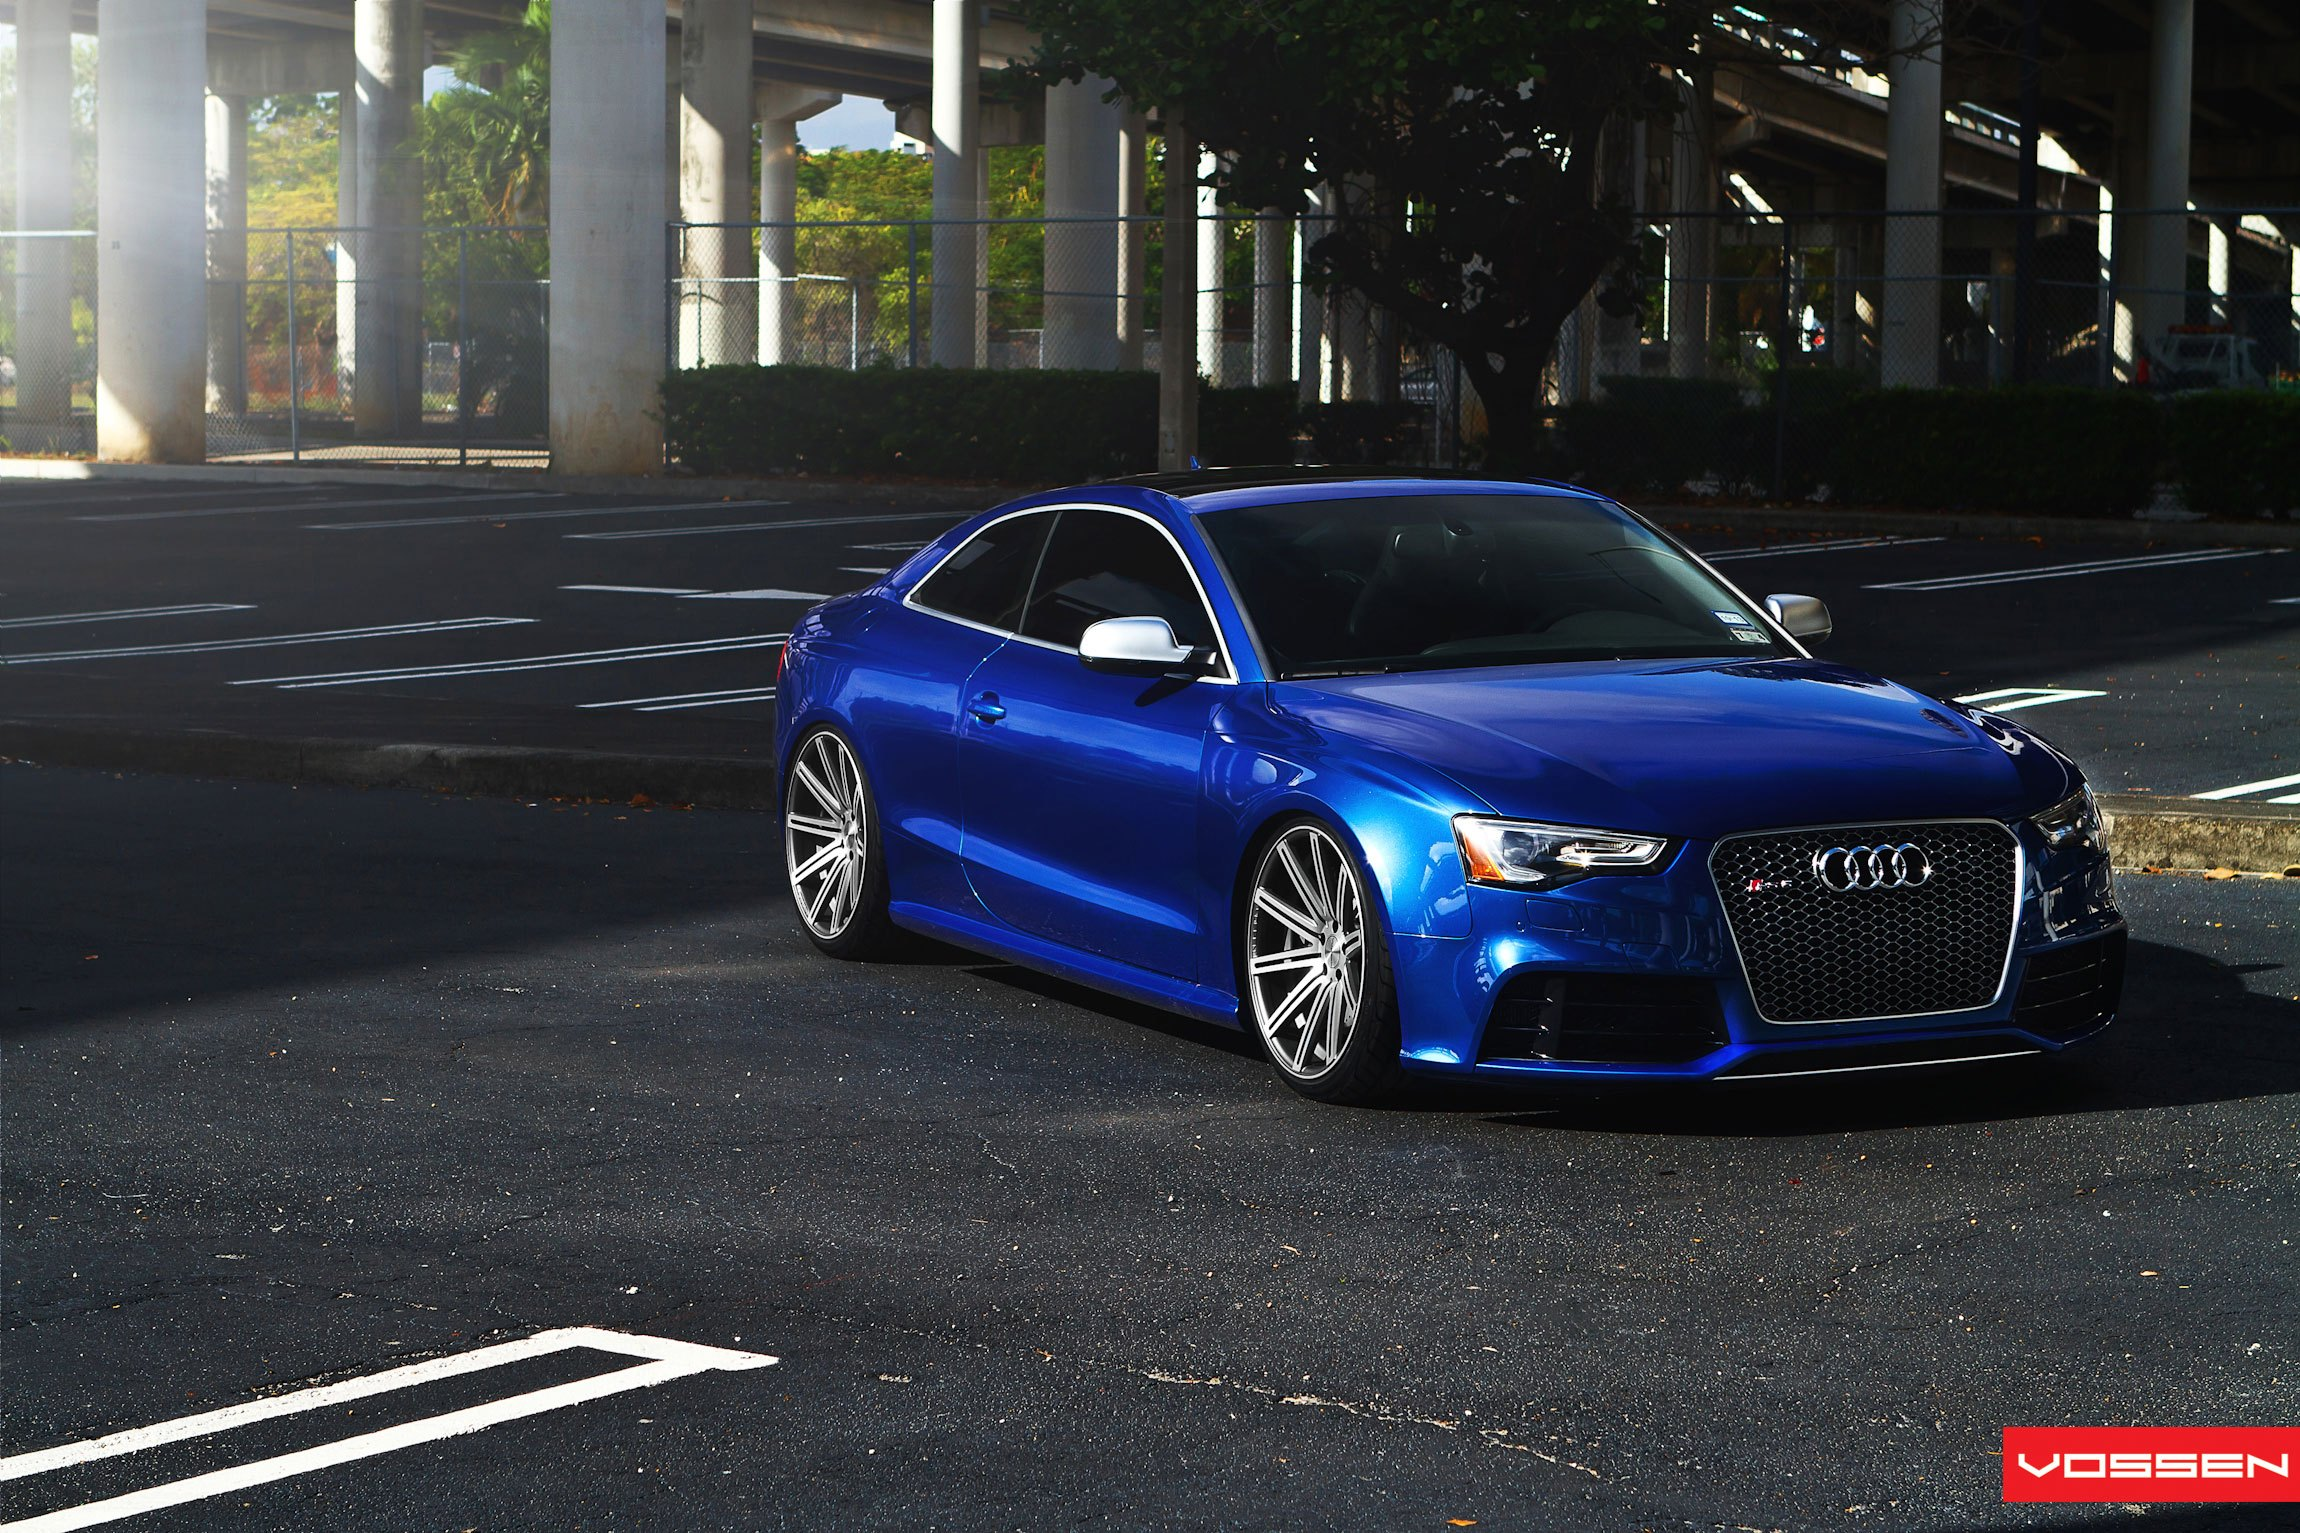 Electric Blue Audi S5 Gets A Lowering Kit And Aftermarket